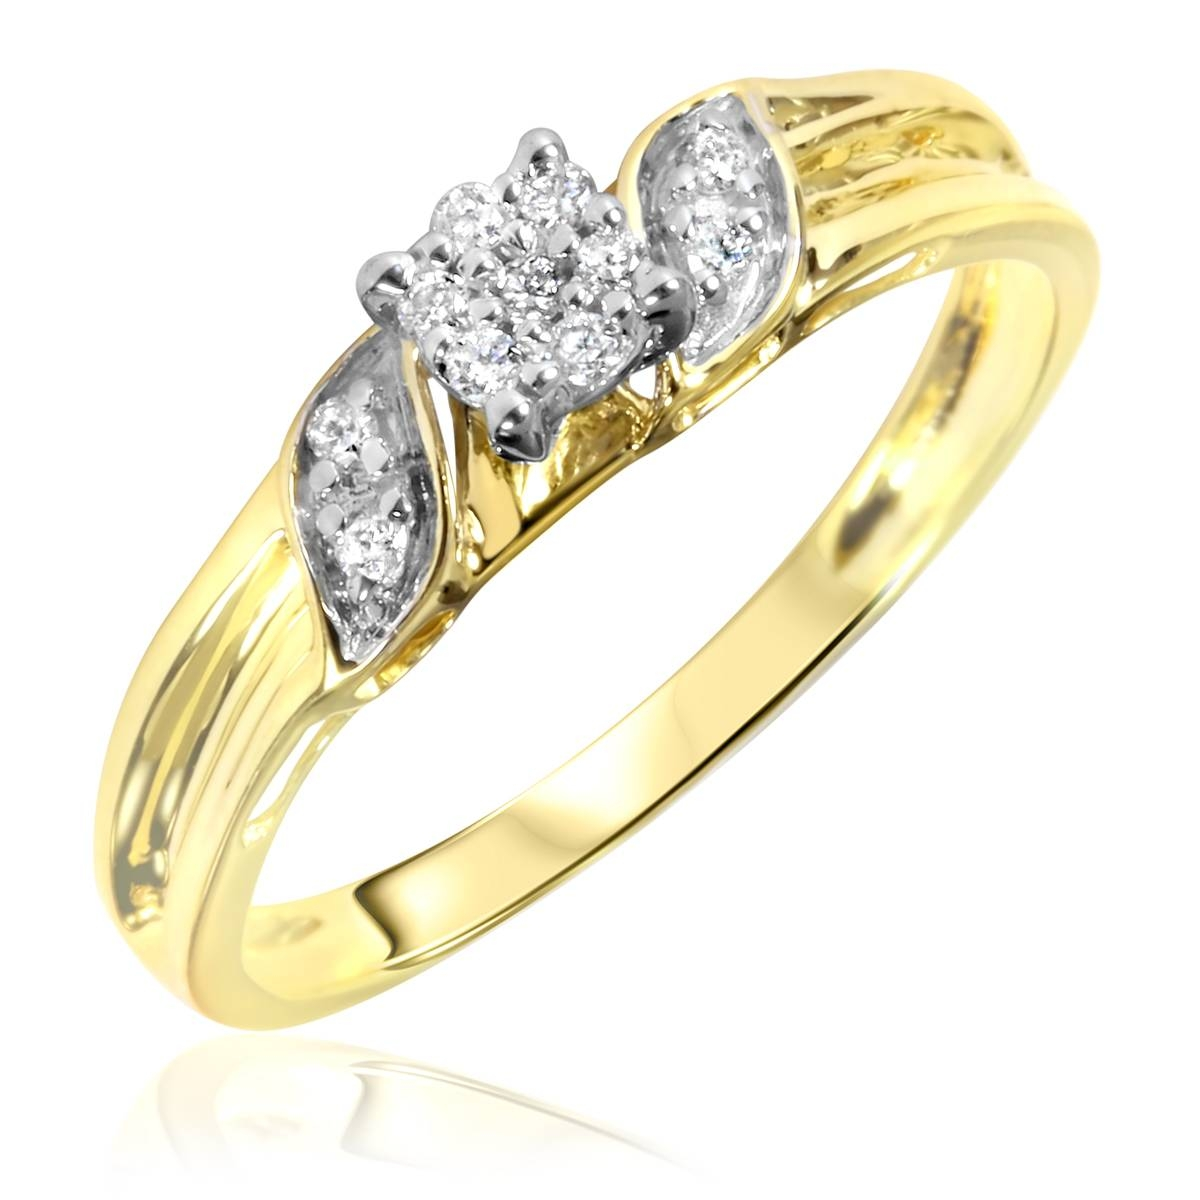 1/4 Carat Diamond Trio Wedding Ring Set 10k Yellow Gold Within Gold Engagement And Wedding Rings Sets (View 4 of 15)